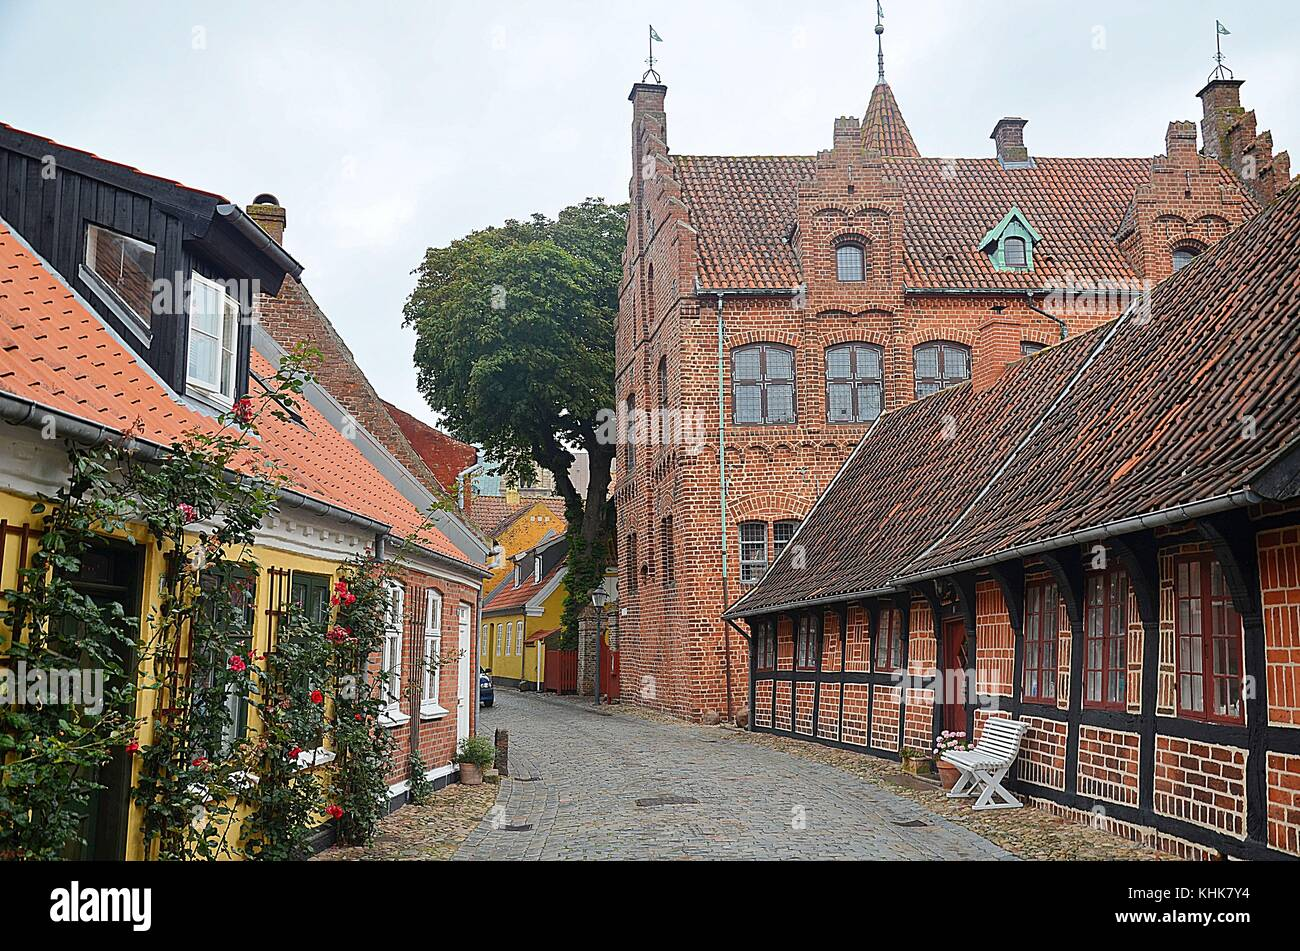 In the streets of Ribe (Denmark) - Stock Image